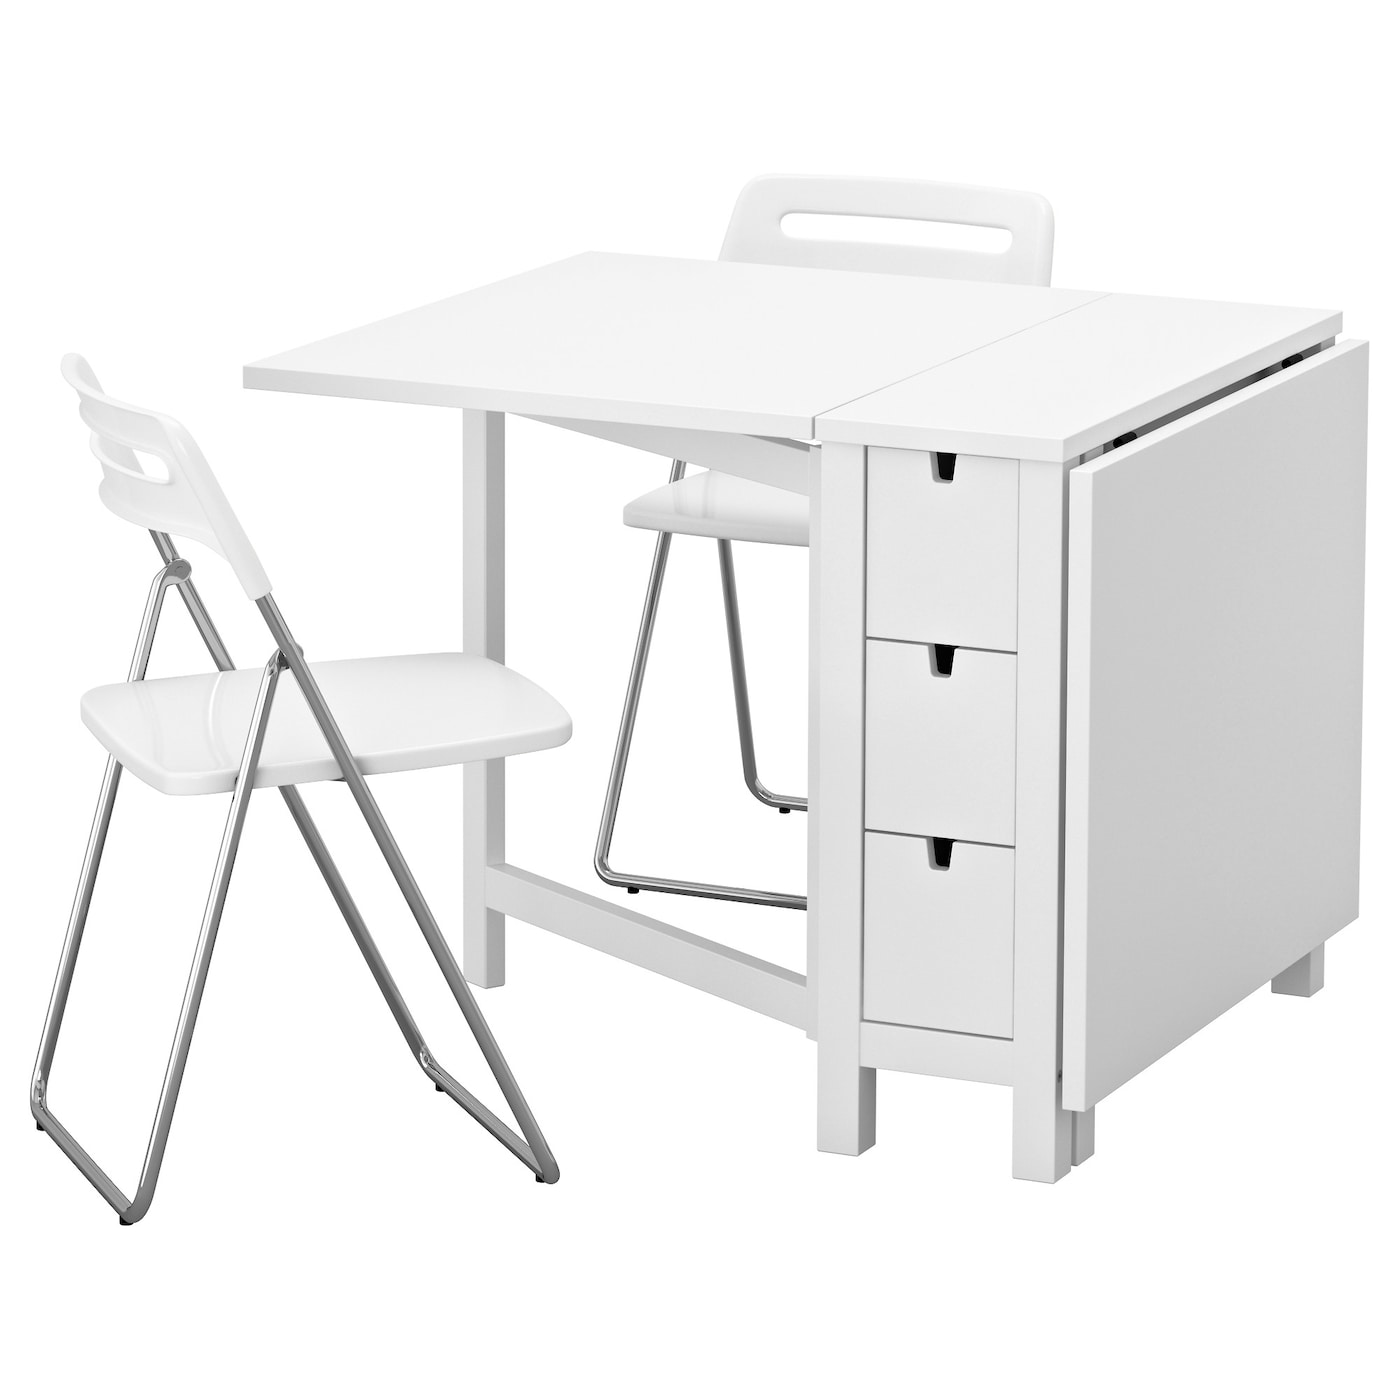 Nisse norden table and 2 folding chairs white 89 cm ikea for Table qui s agrandit ikea